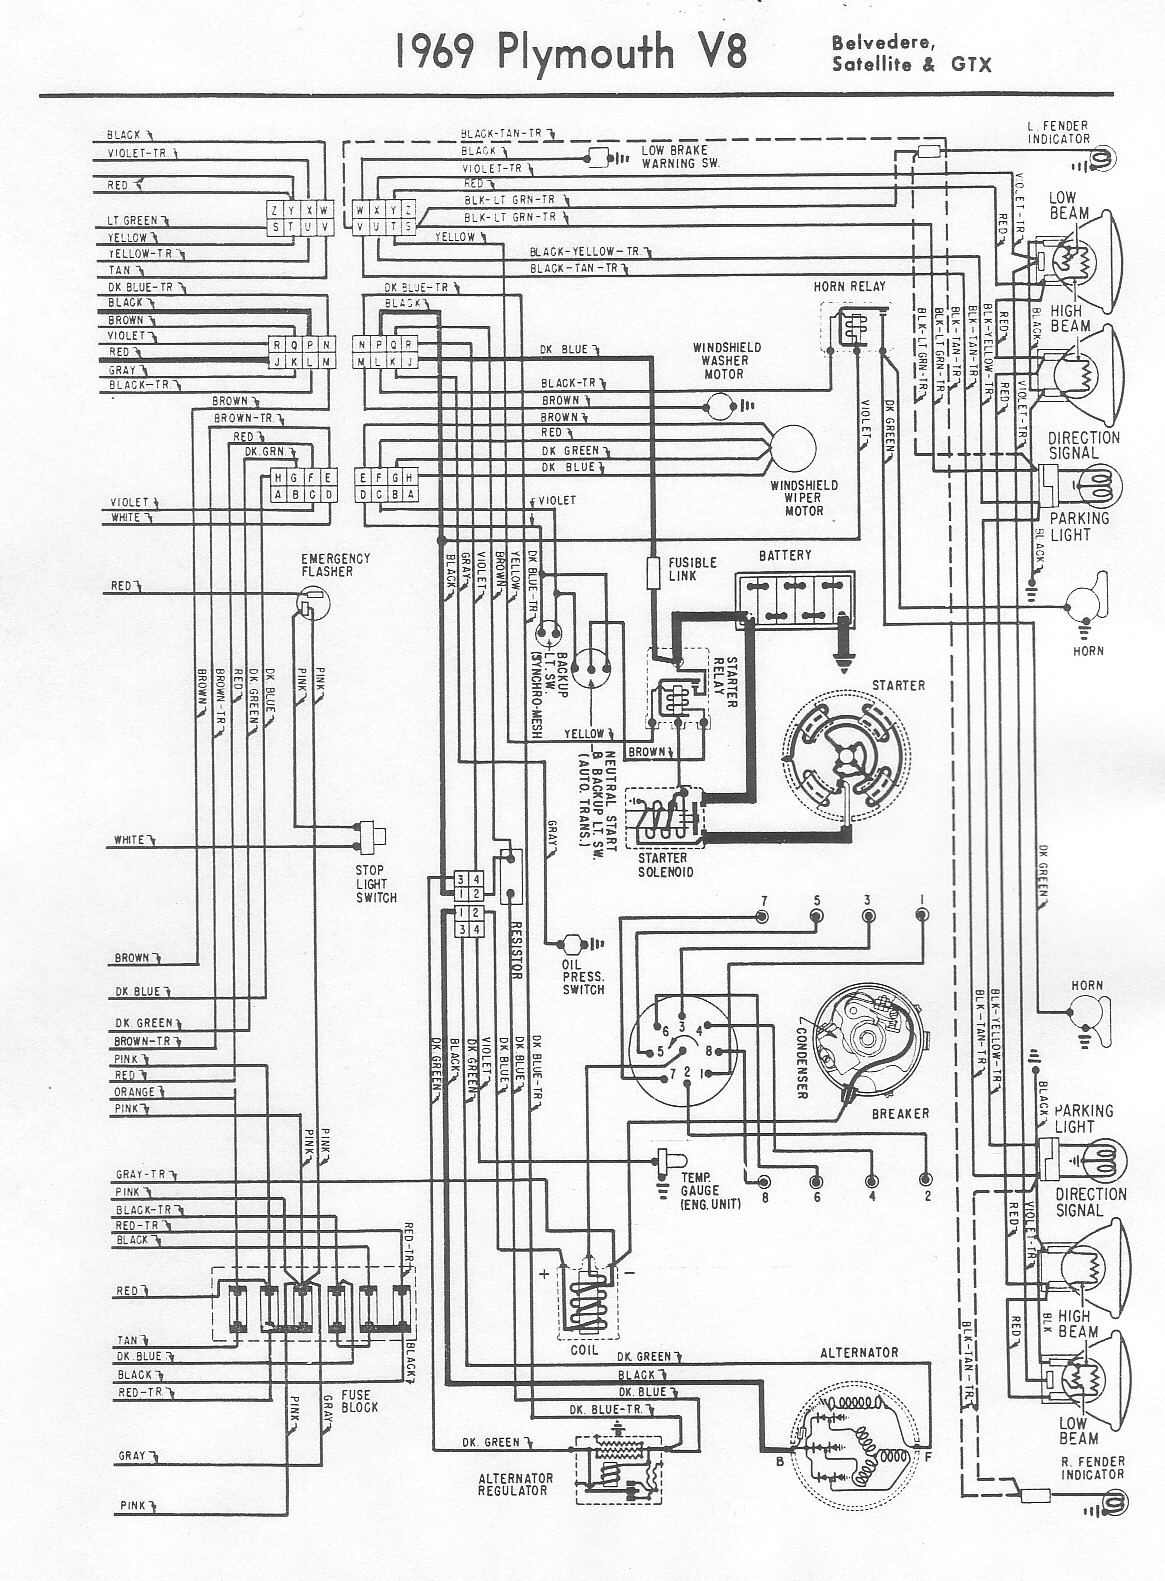 1968 coronet wiring diagram 1968 dodge coronet wiring diagram | wiring library #7